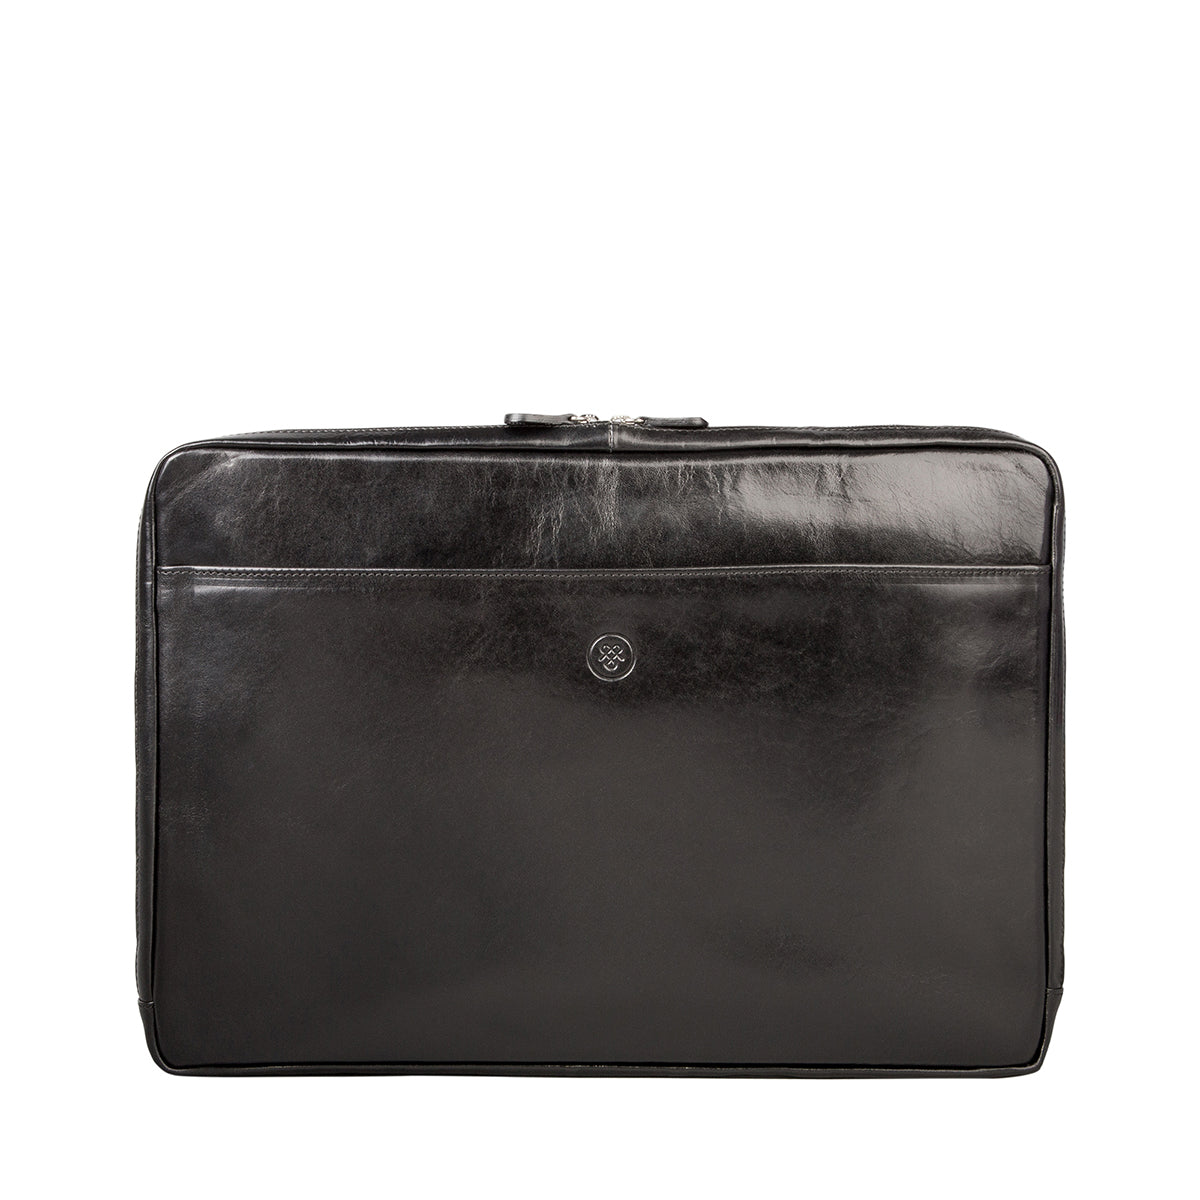 Image 1 of the 'Davoli' 17 Inch Black Veg-Tanned Leather Laptop Bag